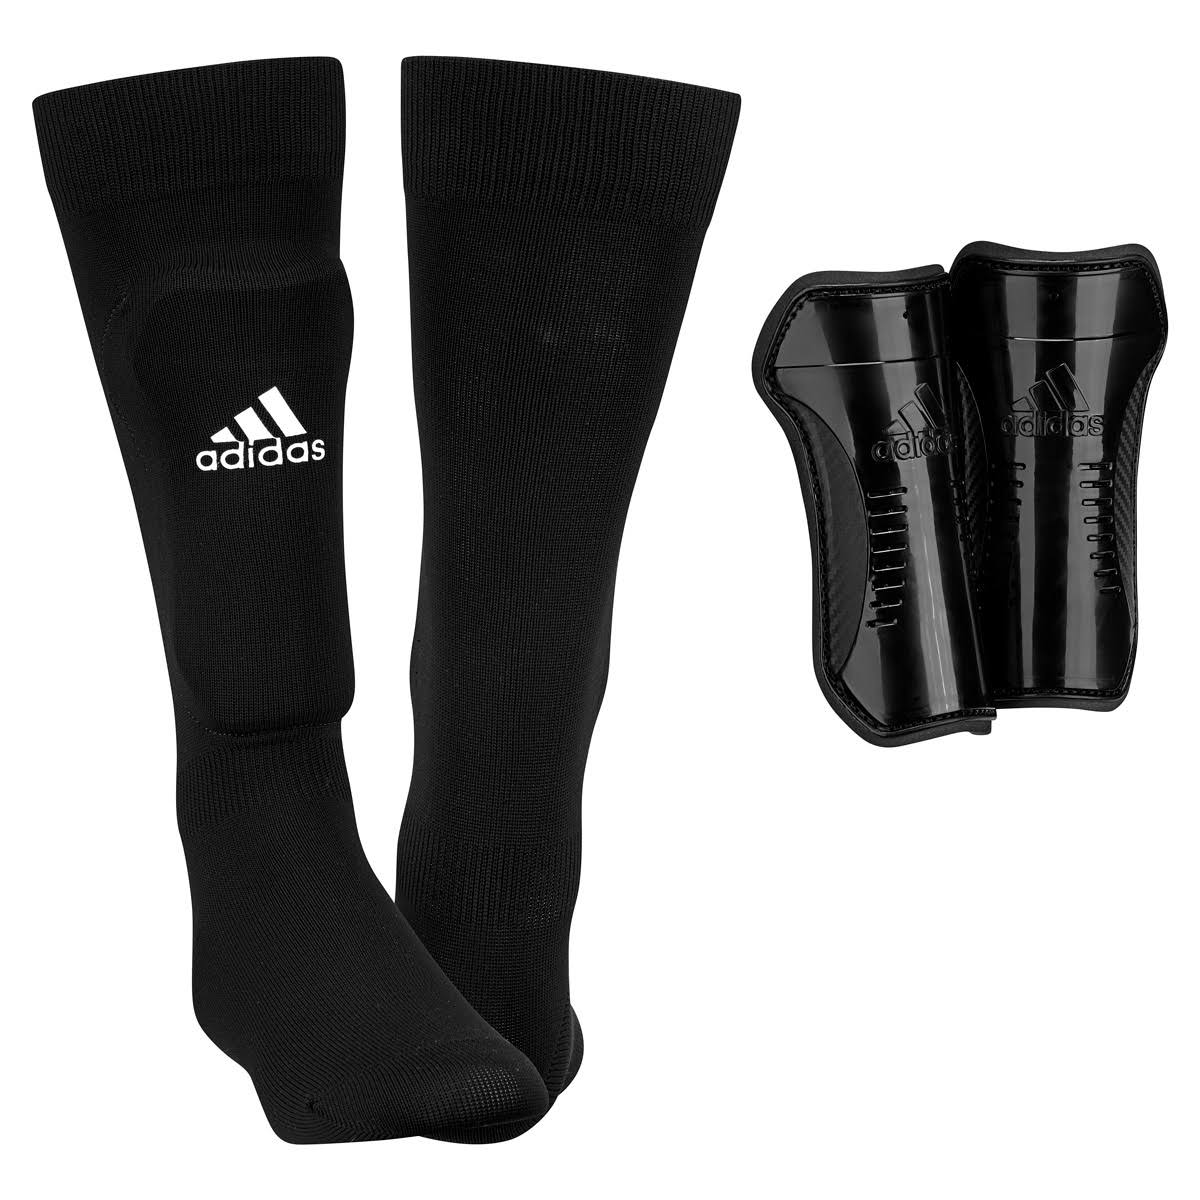 Adidas Youth Soccer Shin Socks - Black